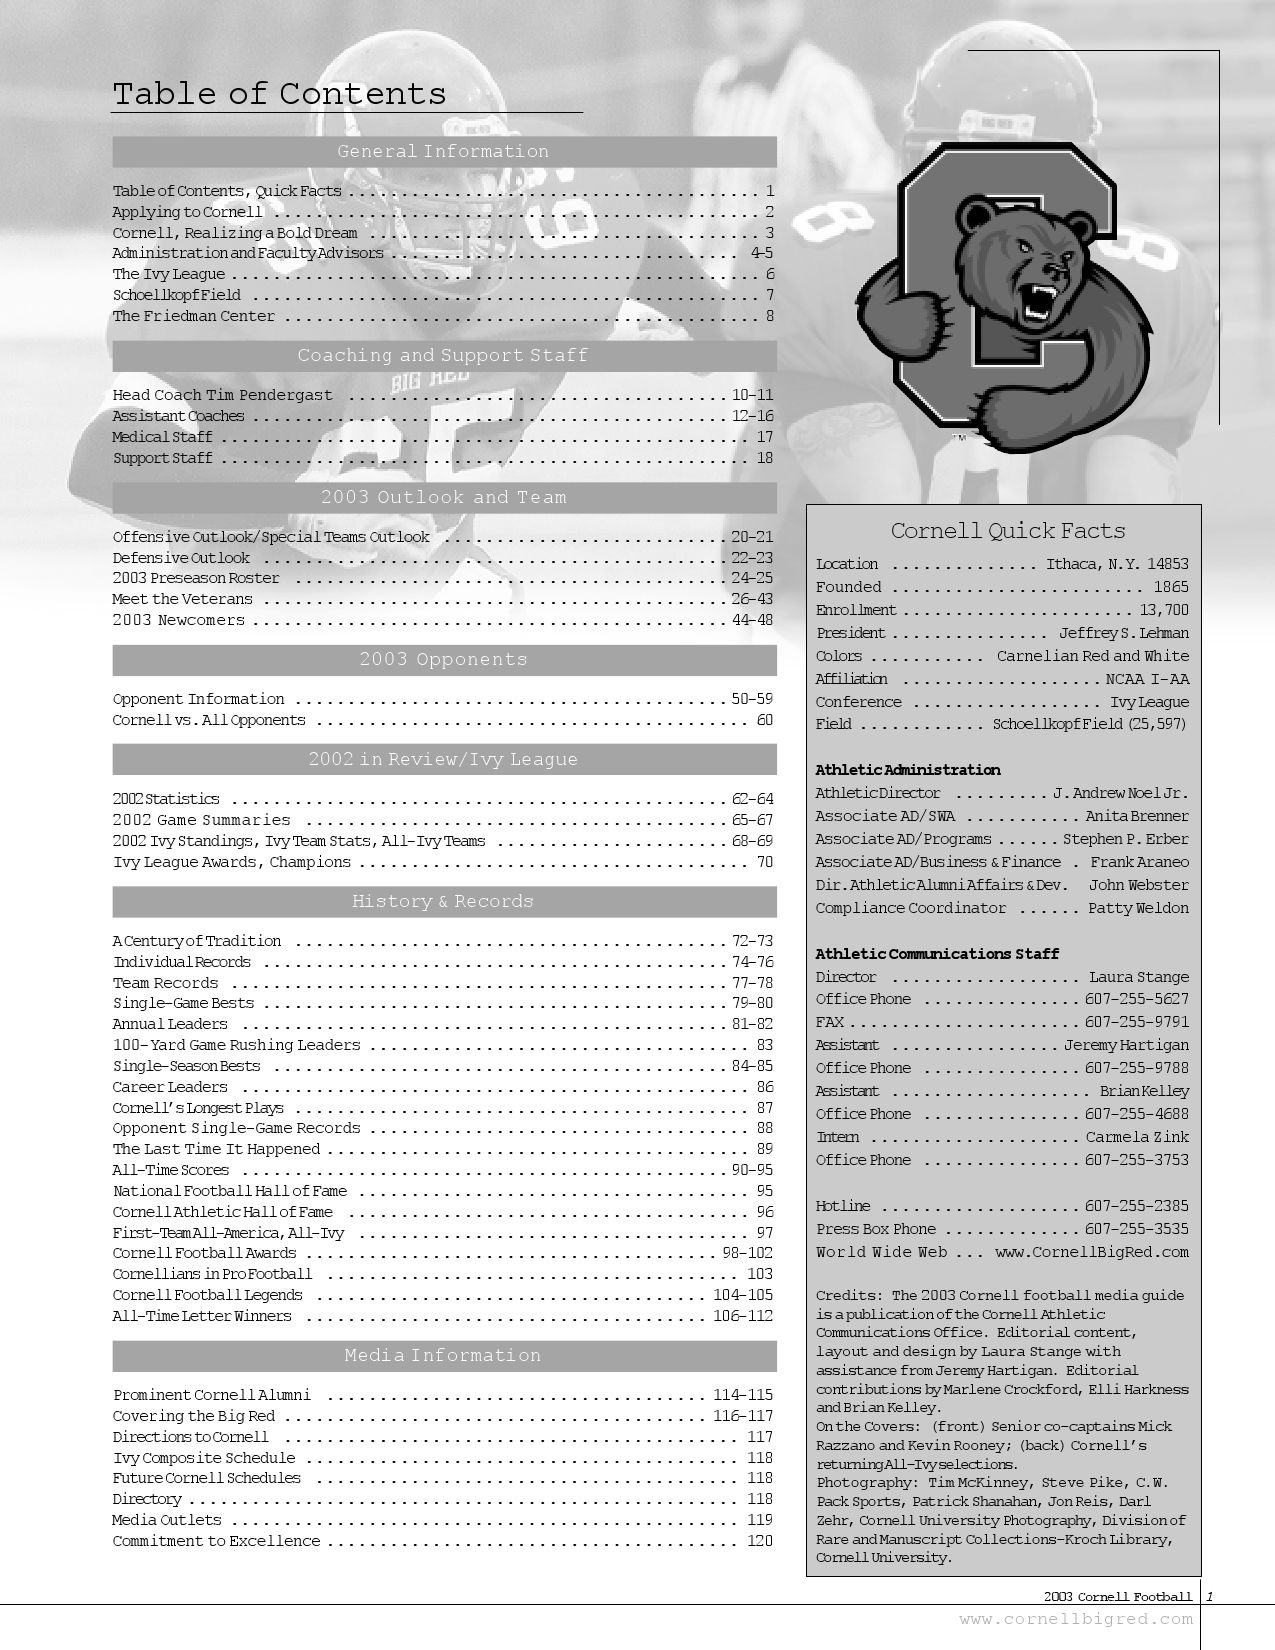 2005 Cornell Football Media Guide by Jeremy Hartigan - issuu